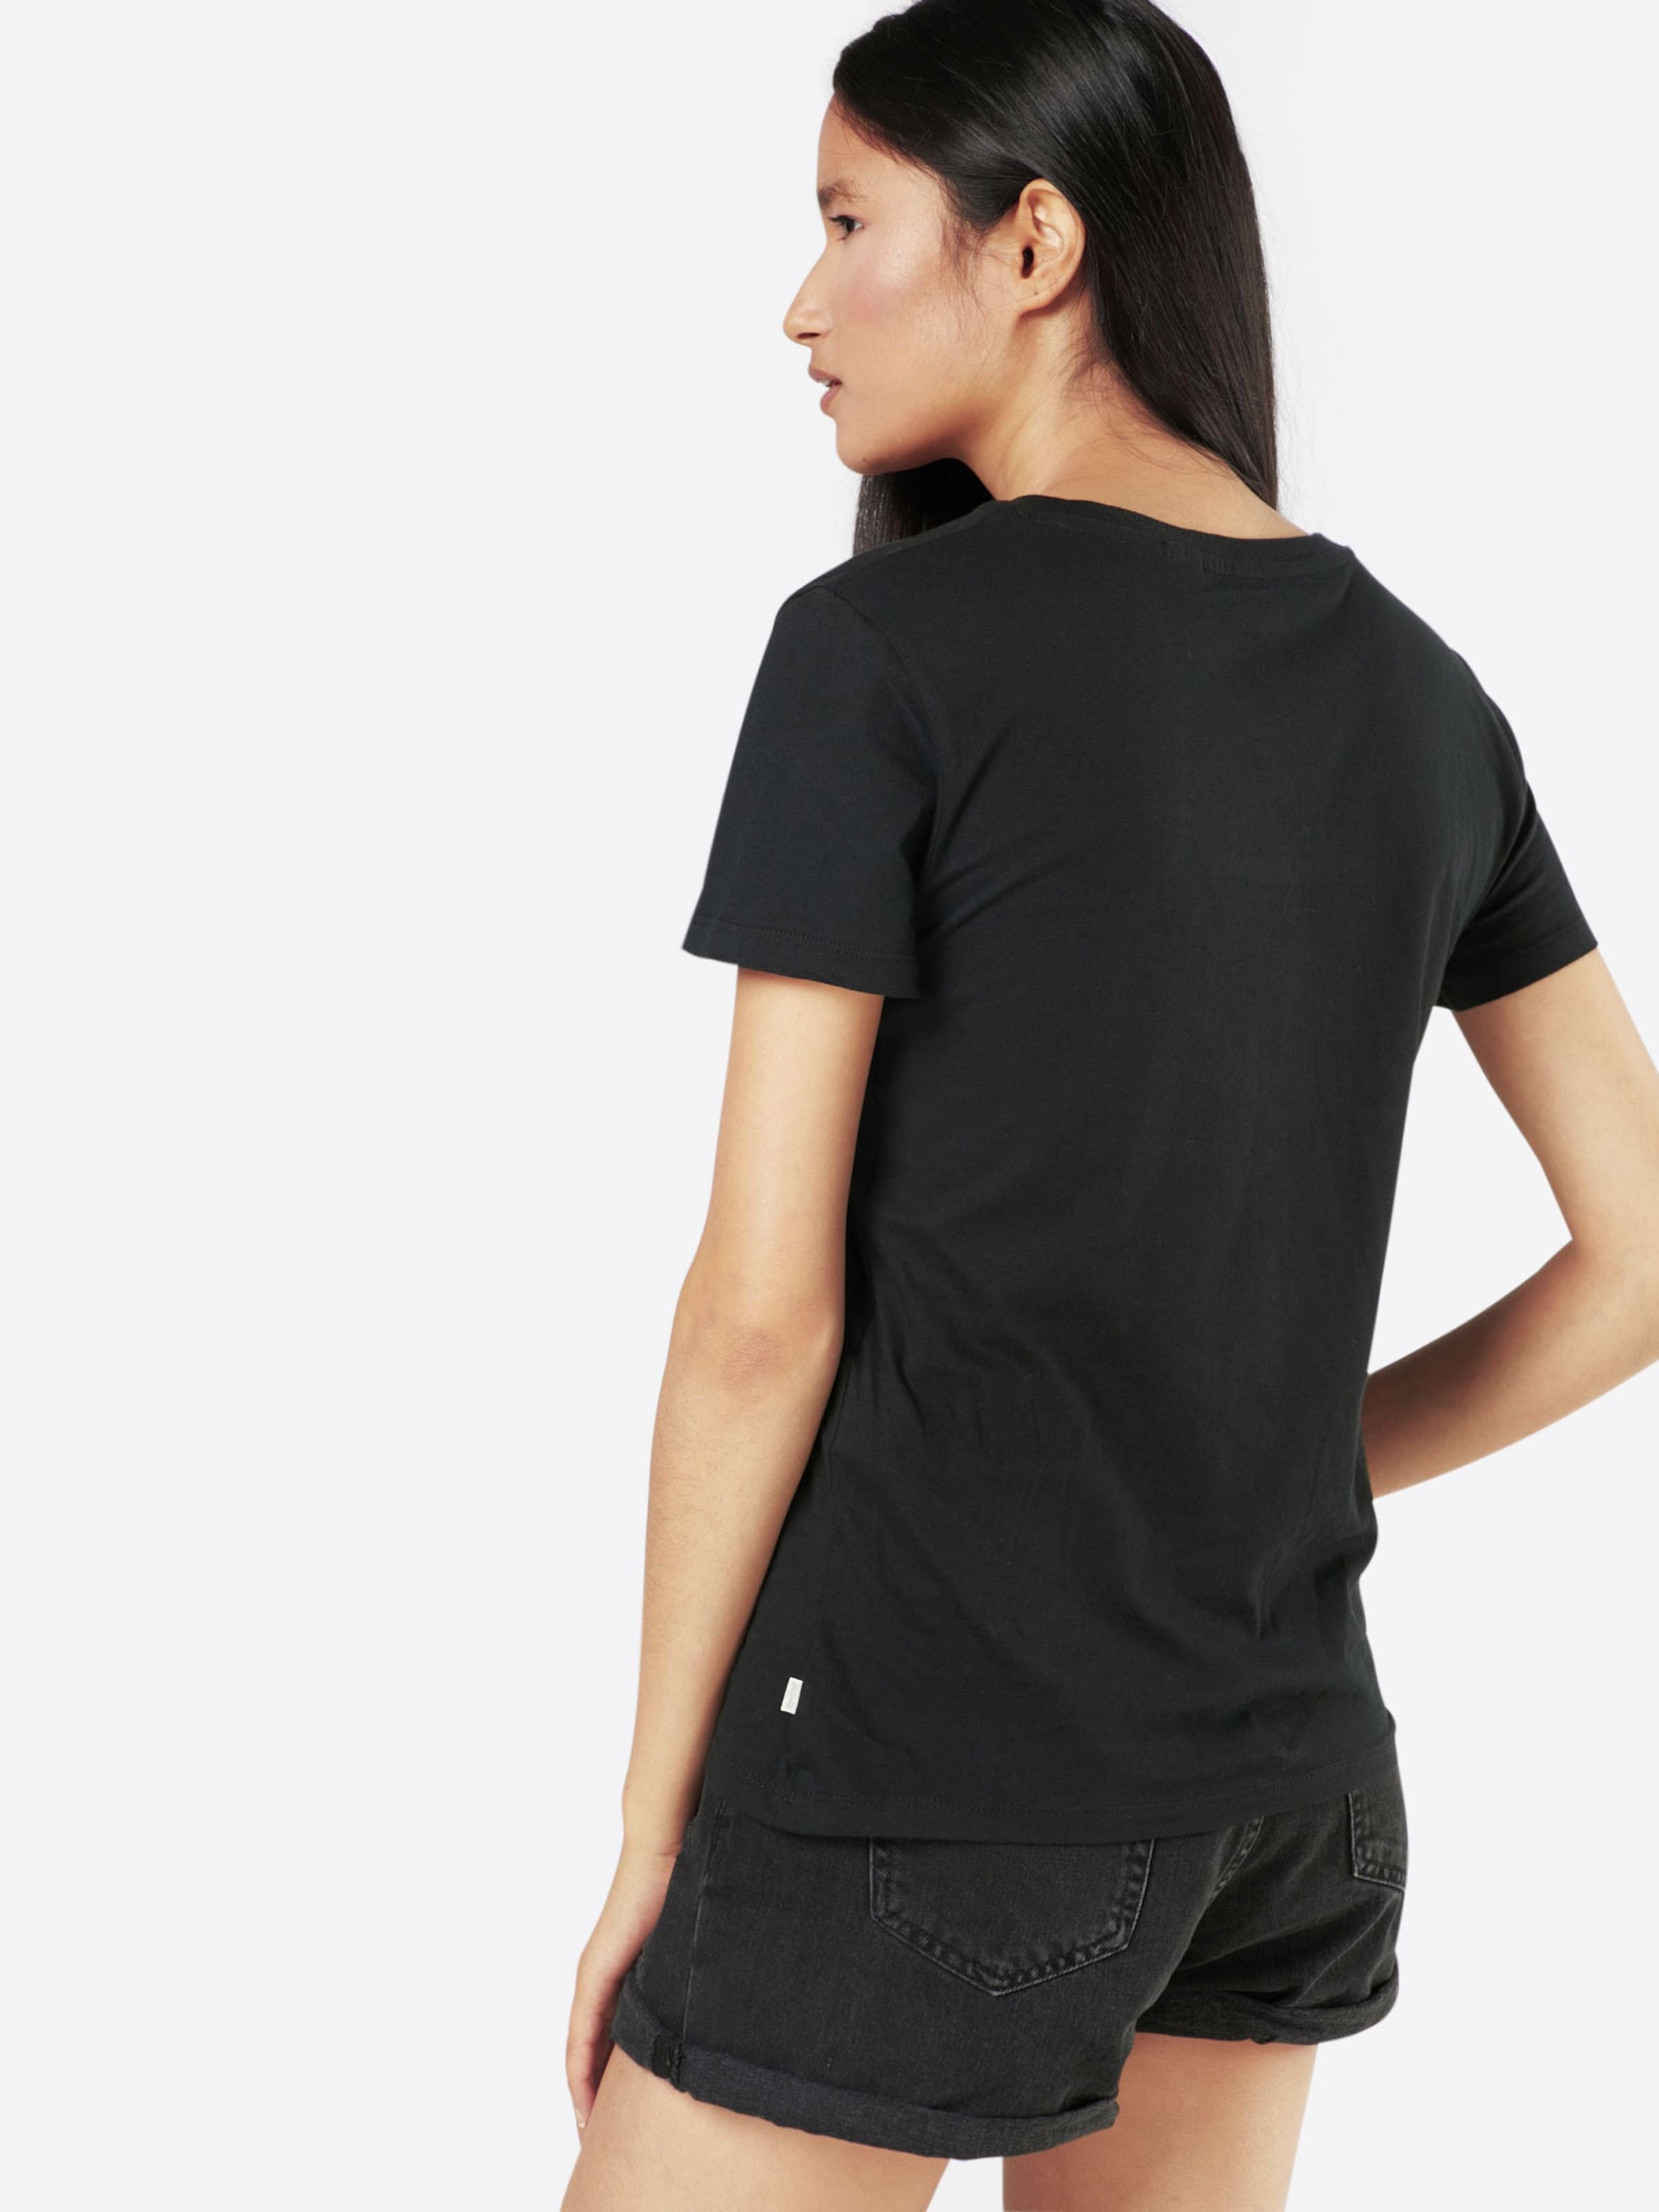 Batwing' Levi's shirt Perfect En Noir 'the Tee T Large 5jLAR34q